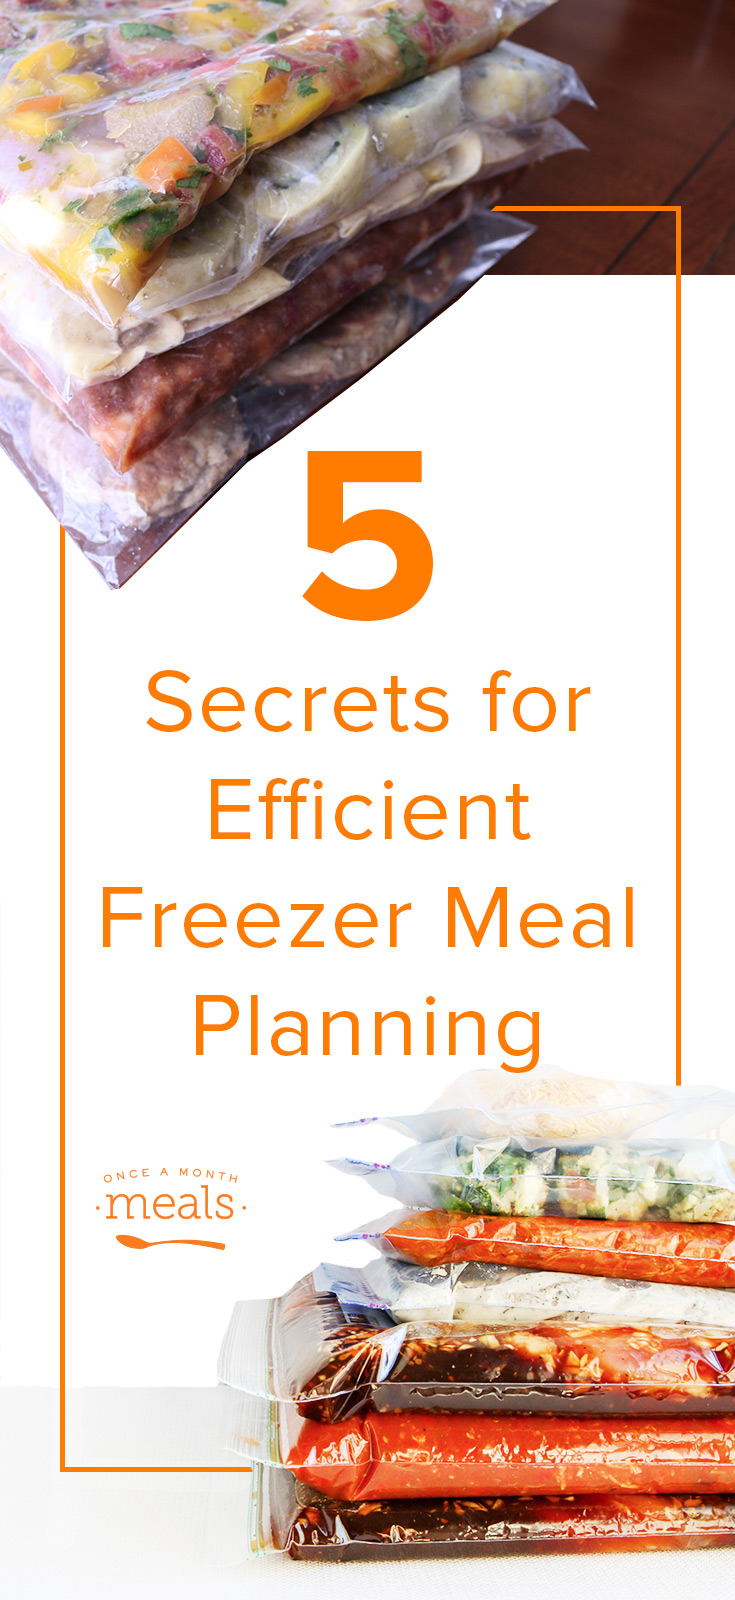 Want to stock the freezer with tasty meals and maximum efficiency? We are sharing 5 secrets to efficient freezer meal planning that you don't want to miss!